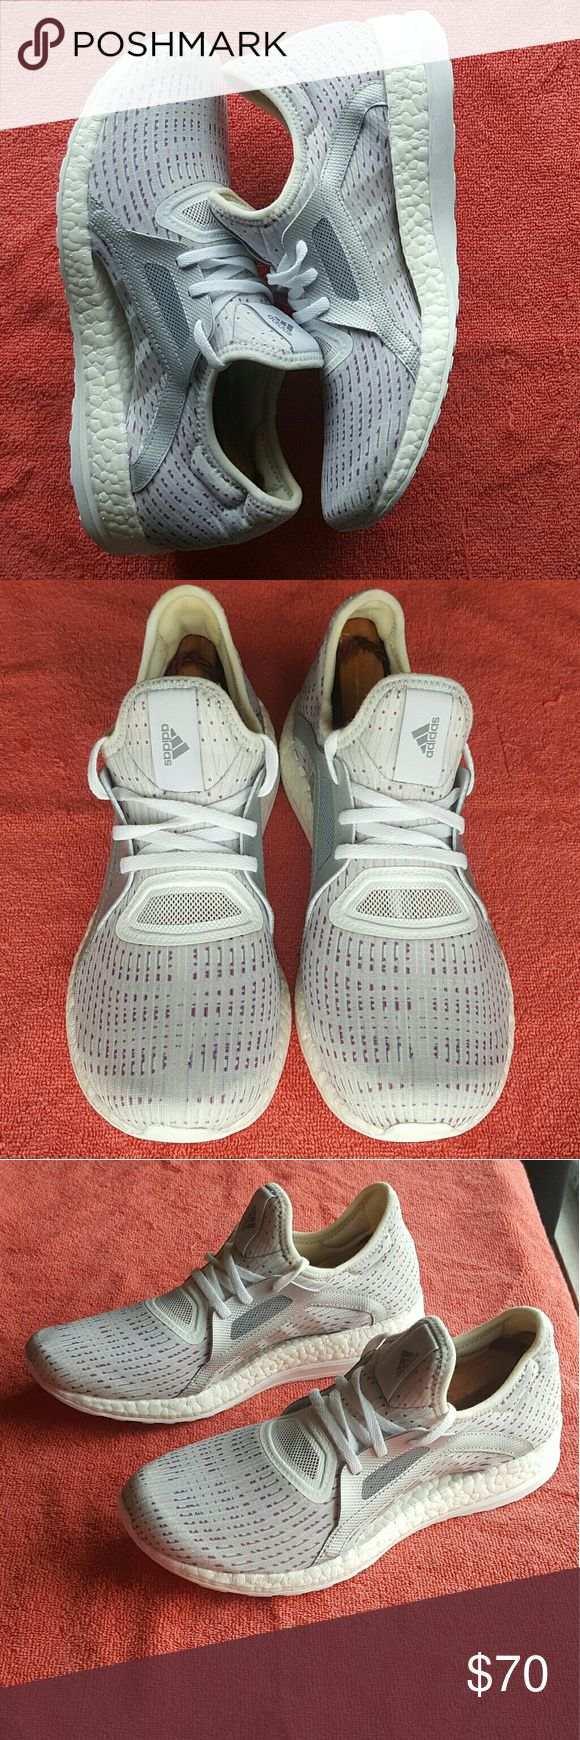 Women's Adidas Pure Boost X Women's Adidas Pure Boost X size 9 excellent condition does not come with box worn one time adidas Shoes Athletic Shoes